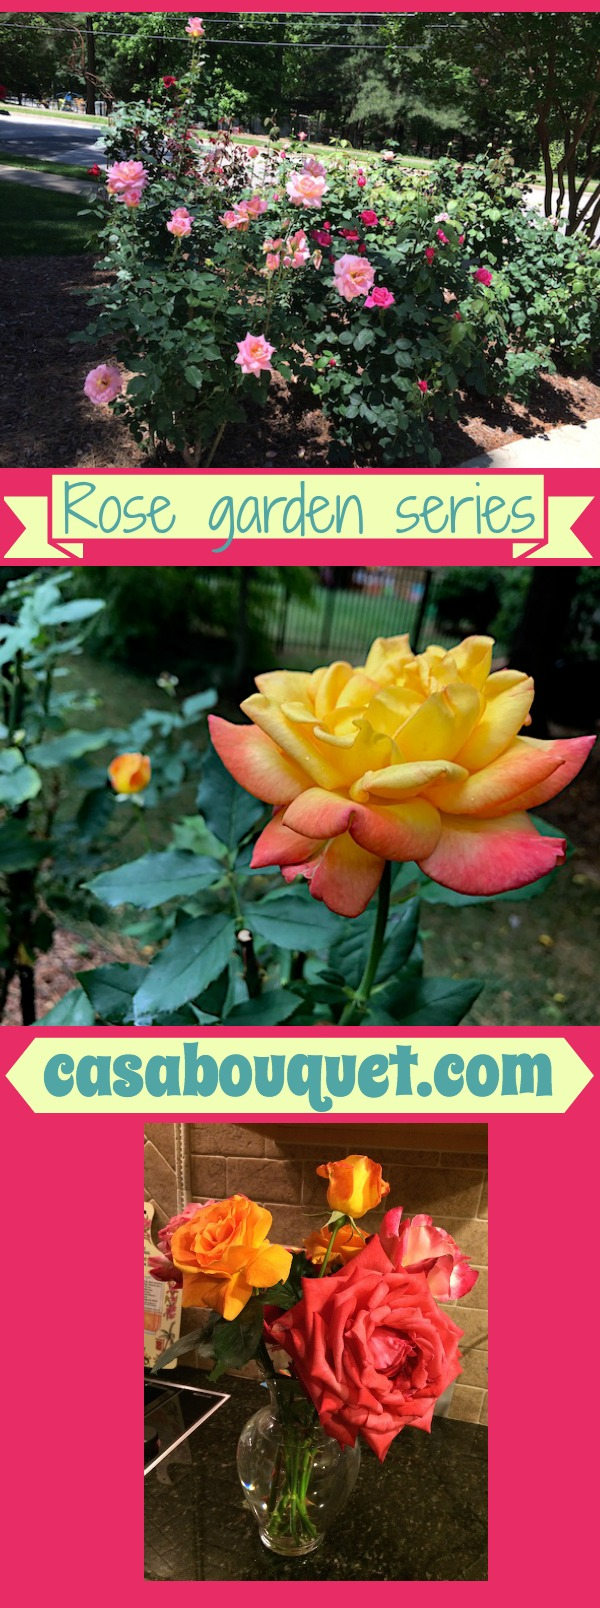 How do you start a rose garden? Find tips for selection, fragrance, planting, maintenance, and cutting and arranging. Posts for early spring, May, and fall.